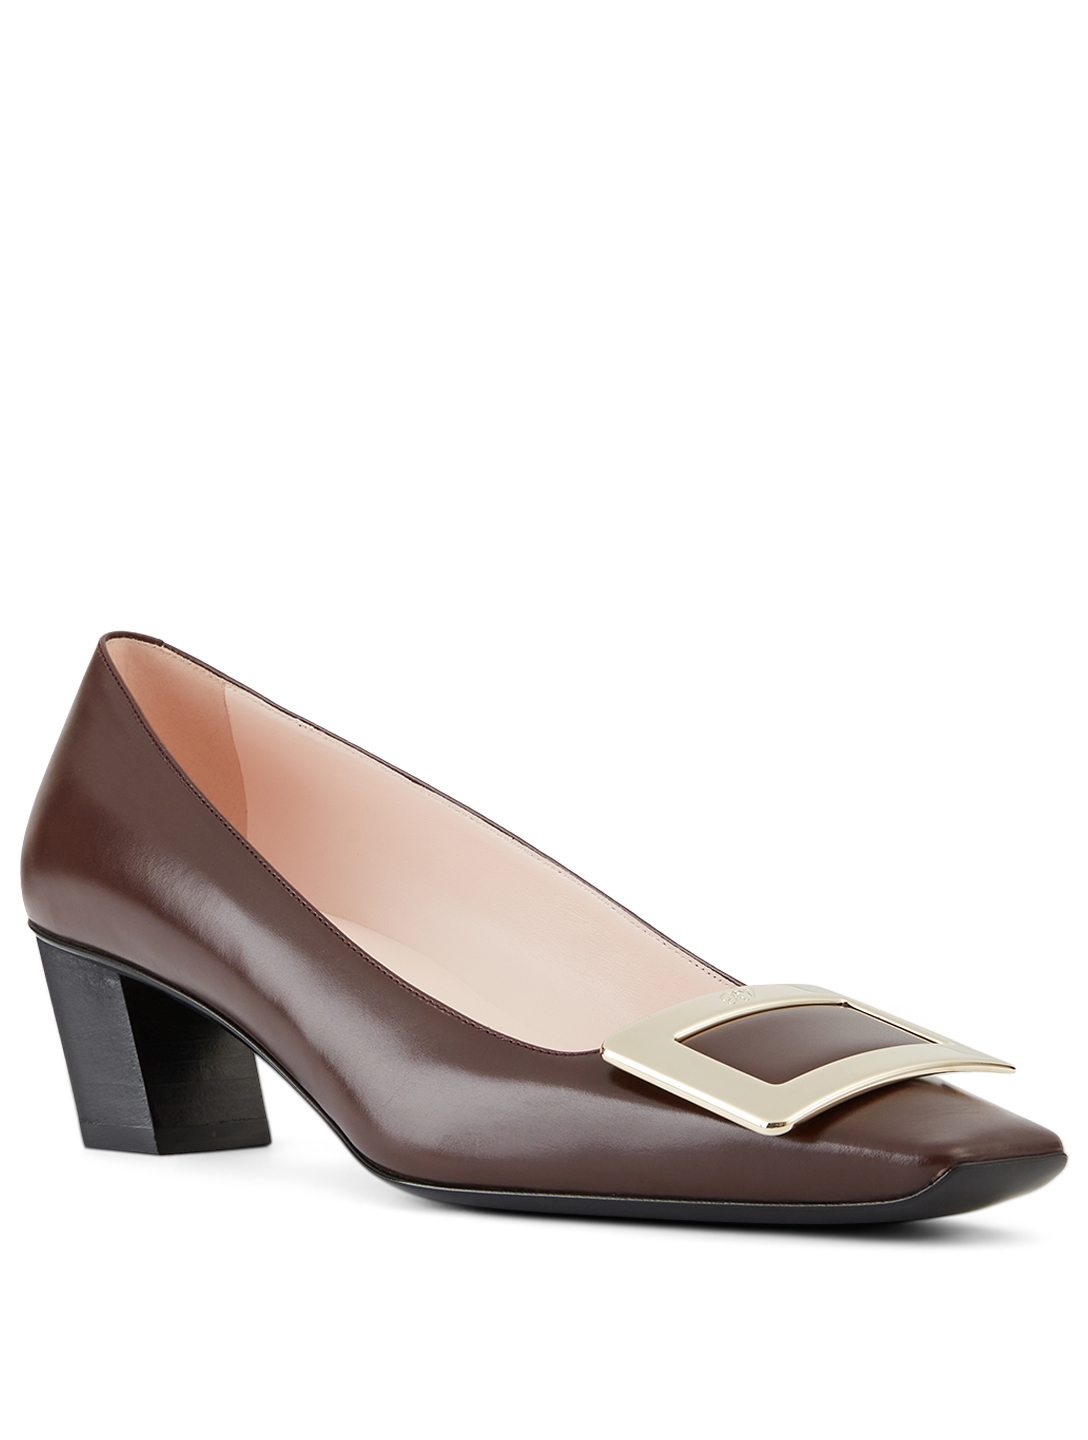 ROGER VIVIER Belle Vivier Leather Pumps Women's Brown